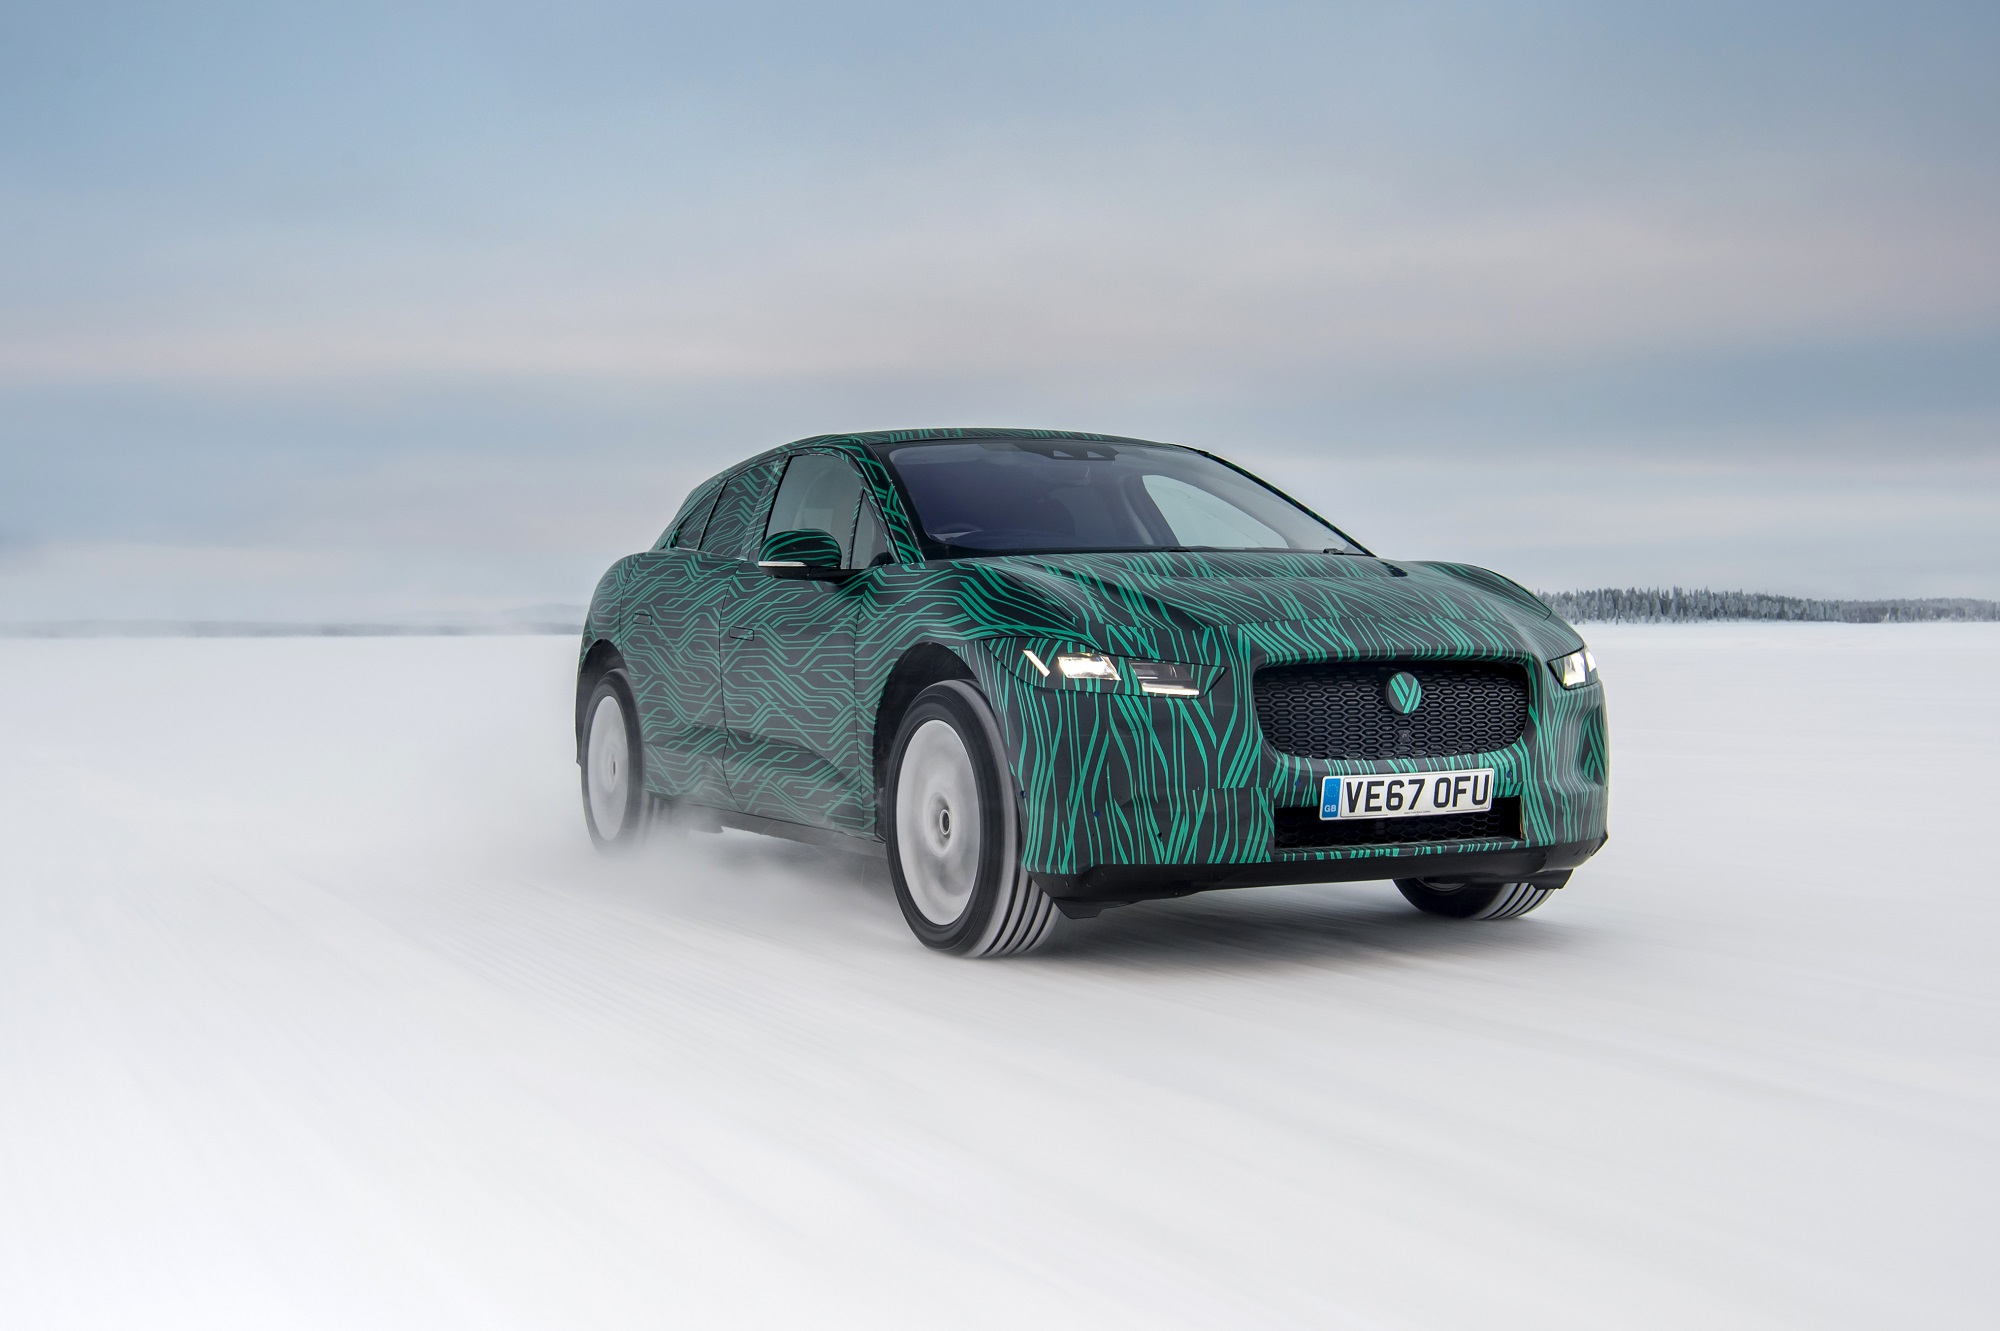 Jaguarforums.com Jaguar I-PACE 2018 2019 EV Electric SUV Car News